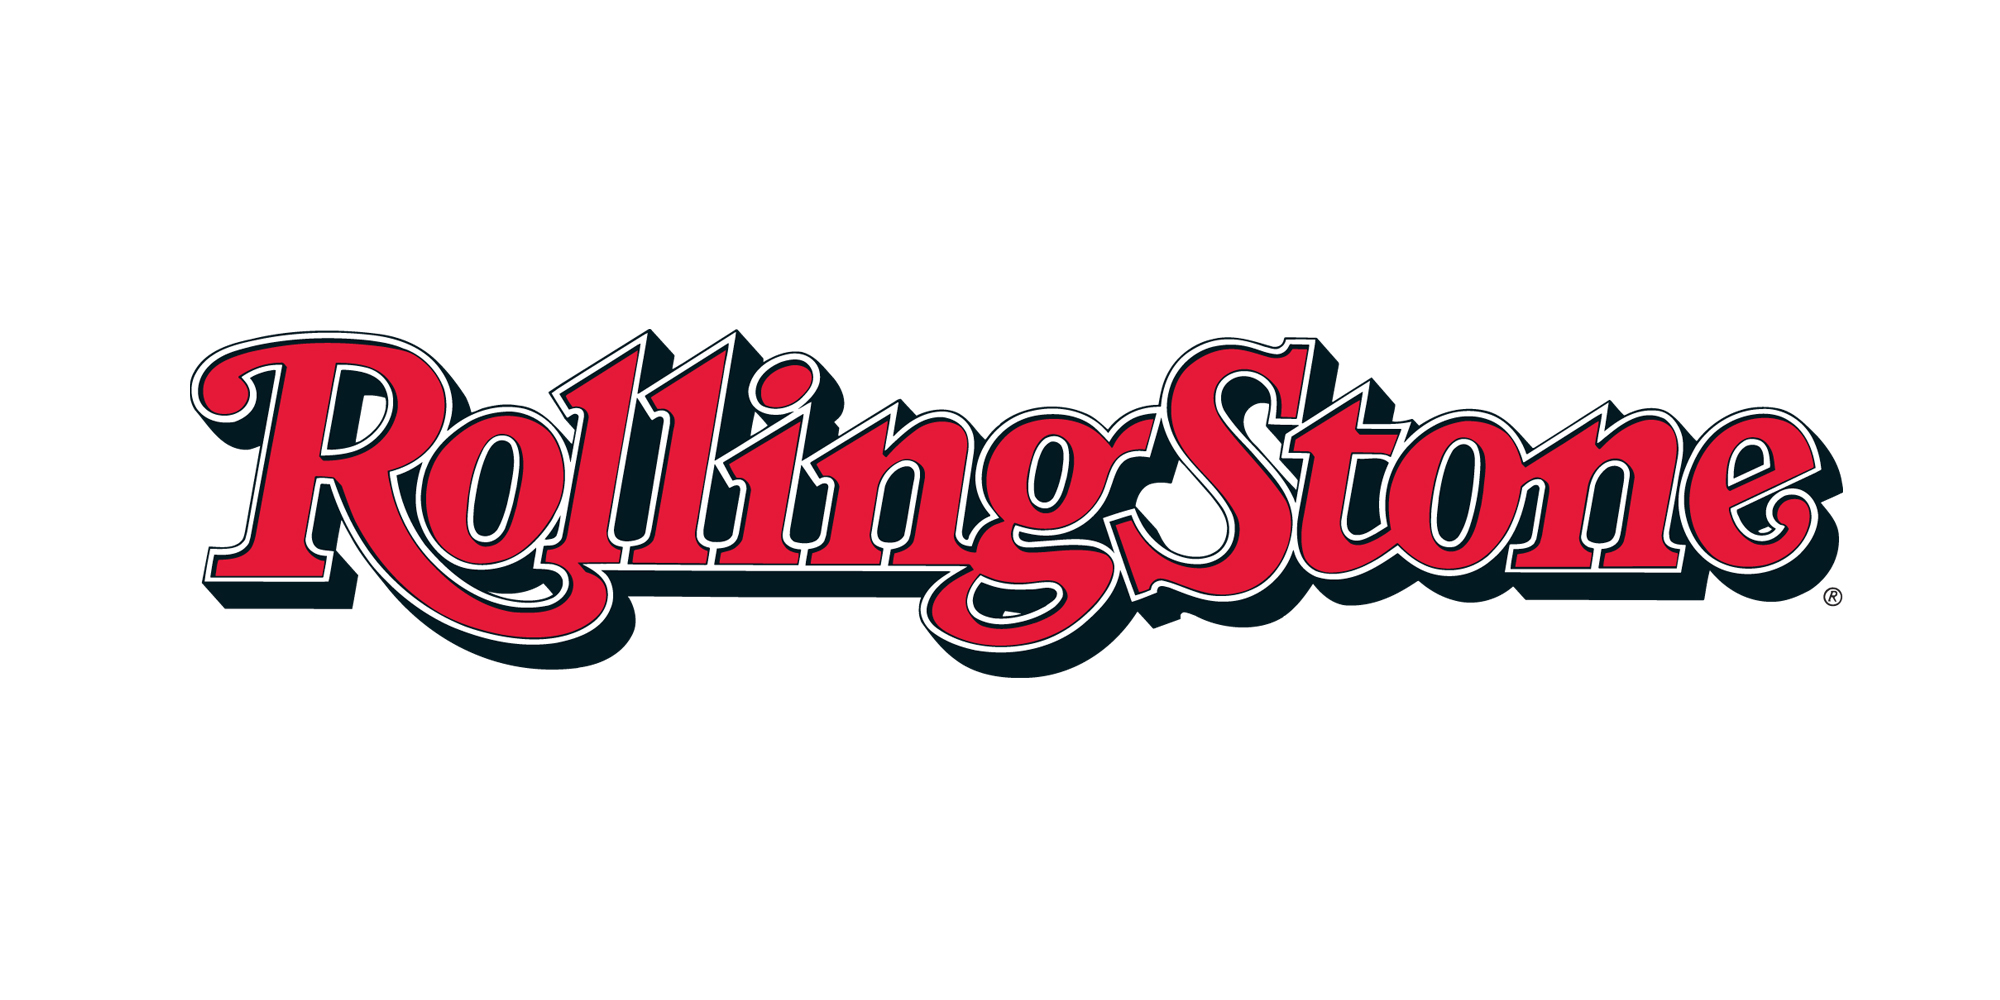 On Rolling Stone, lessons from fact-checking, and the ... Rolling Stones